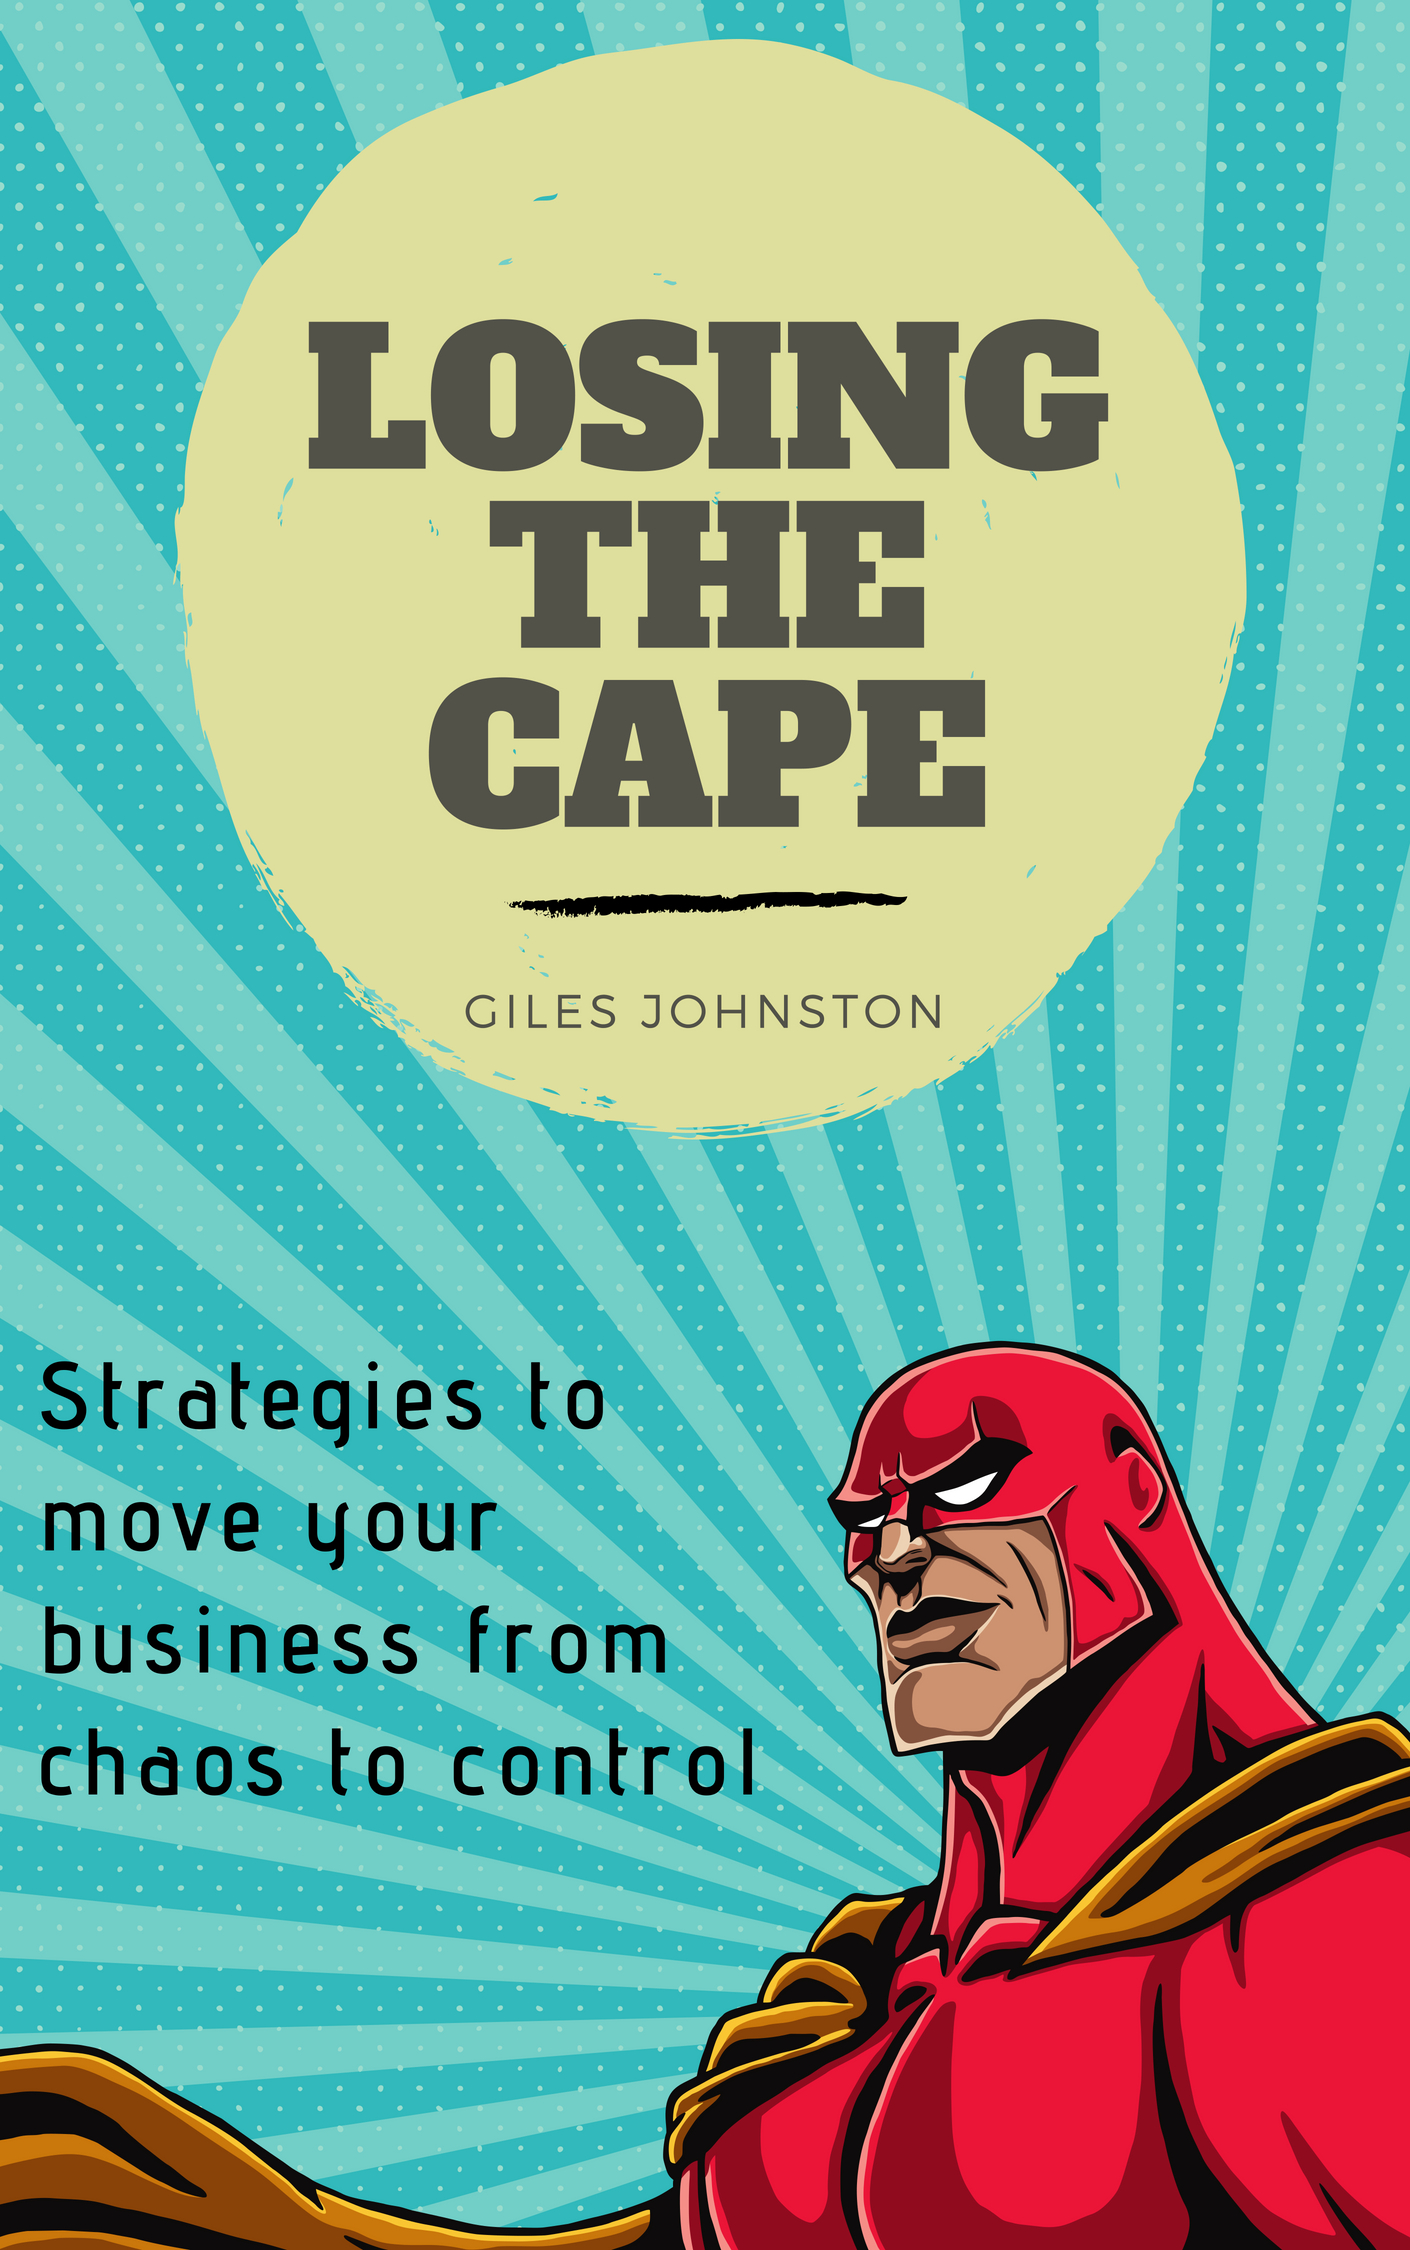 cause and effect thinking - losing the cape